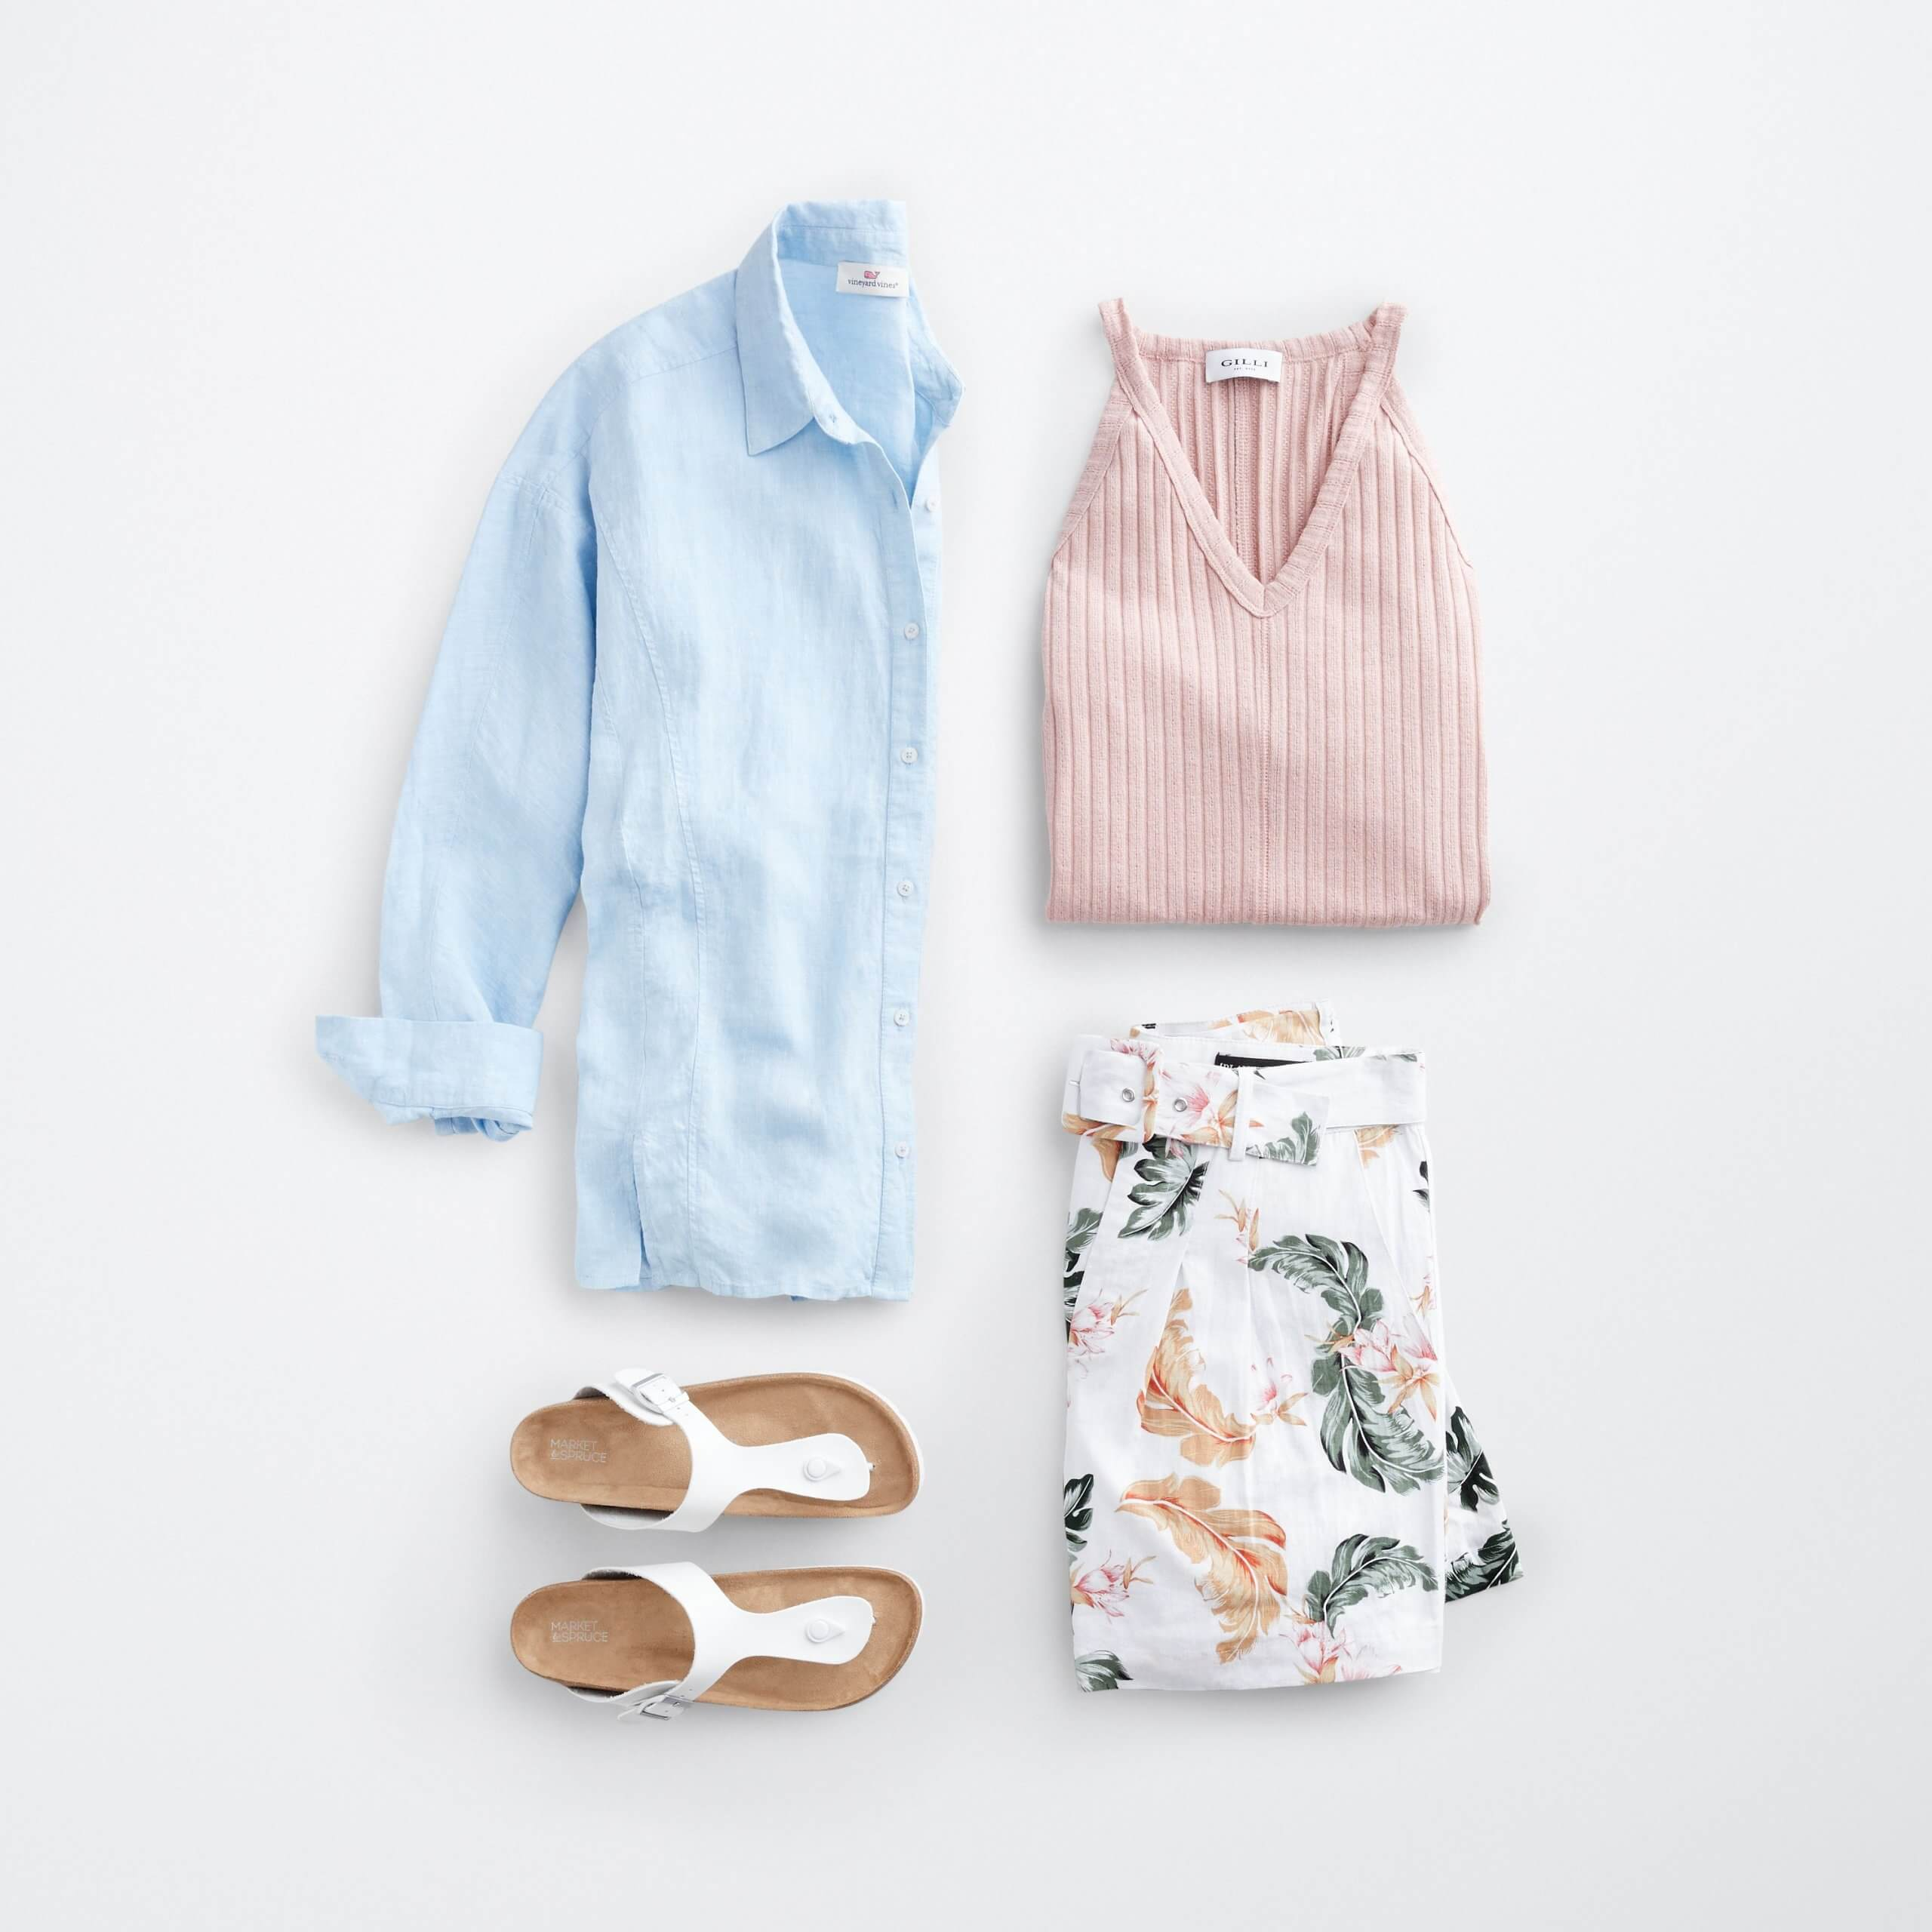 Stitch Fix Women's outfit laydown featuring a blue button-front shirt, light pink tank top, floral linen shorts and white sandals.